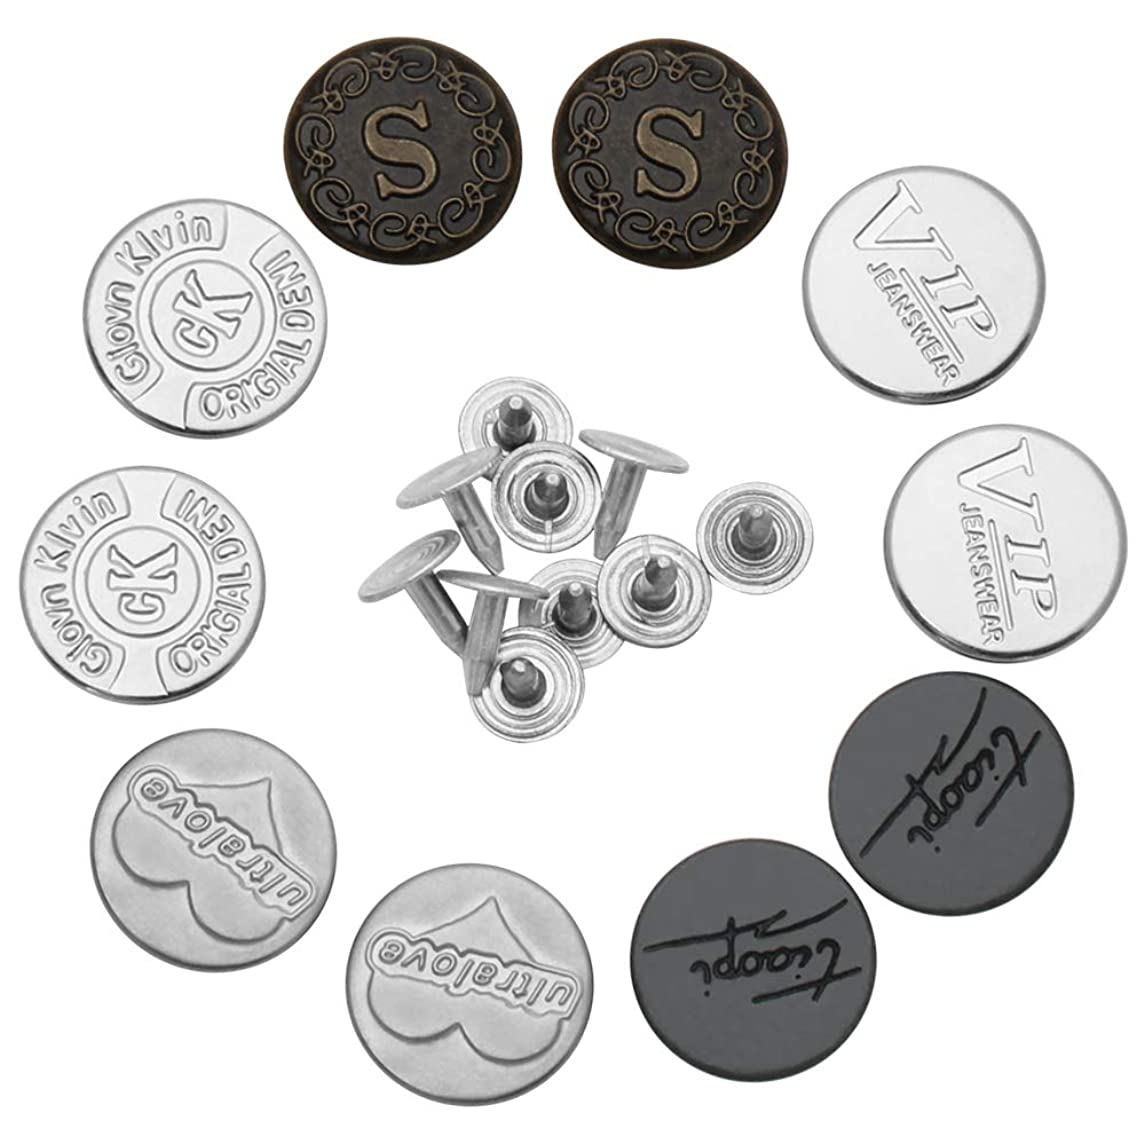 Metal Replacement Buttons for Jeans, Luxiv Jean No-Sew Tack Buttons for Leather 10 Sets 17mm Denim Women and Men Jeans Metal Replacement Buttons Kit with Rivet Buttons for Jeans, Bags, Clothes (17mm)